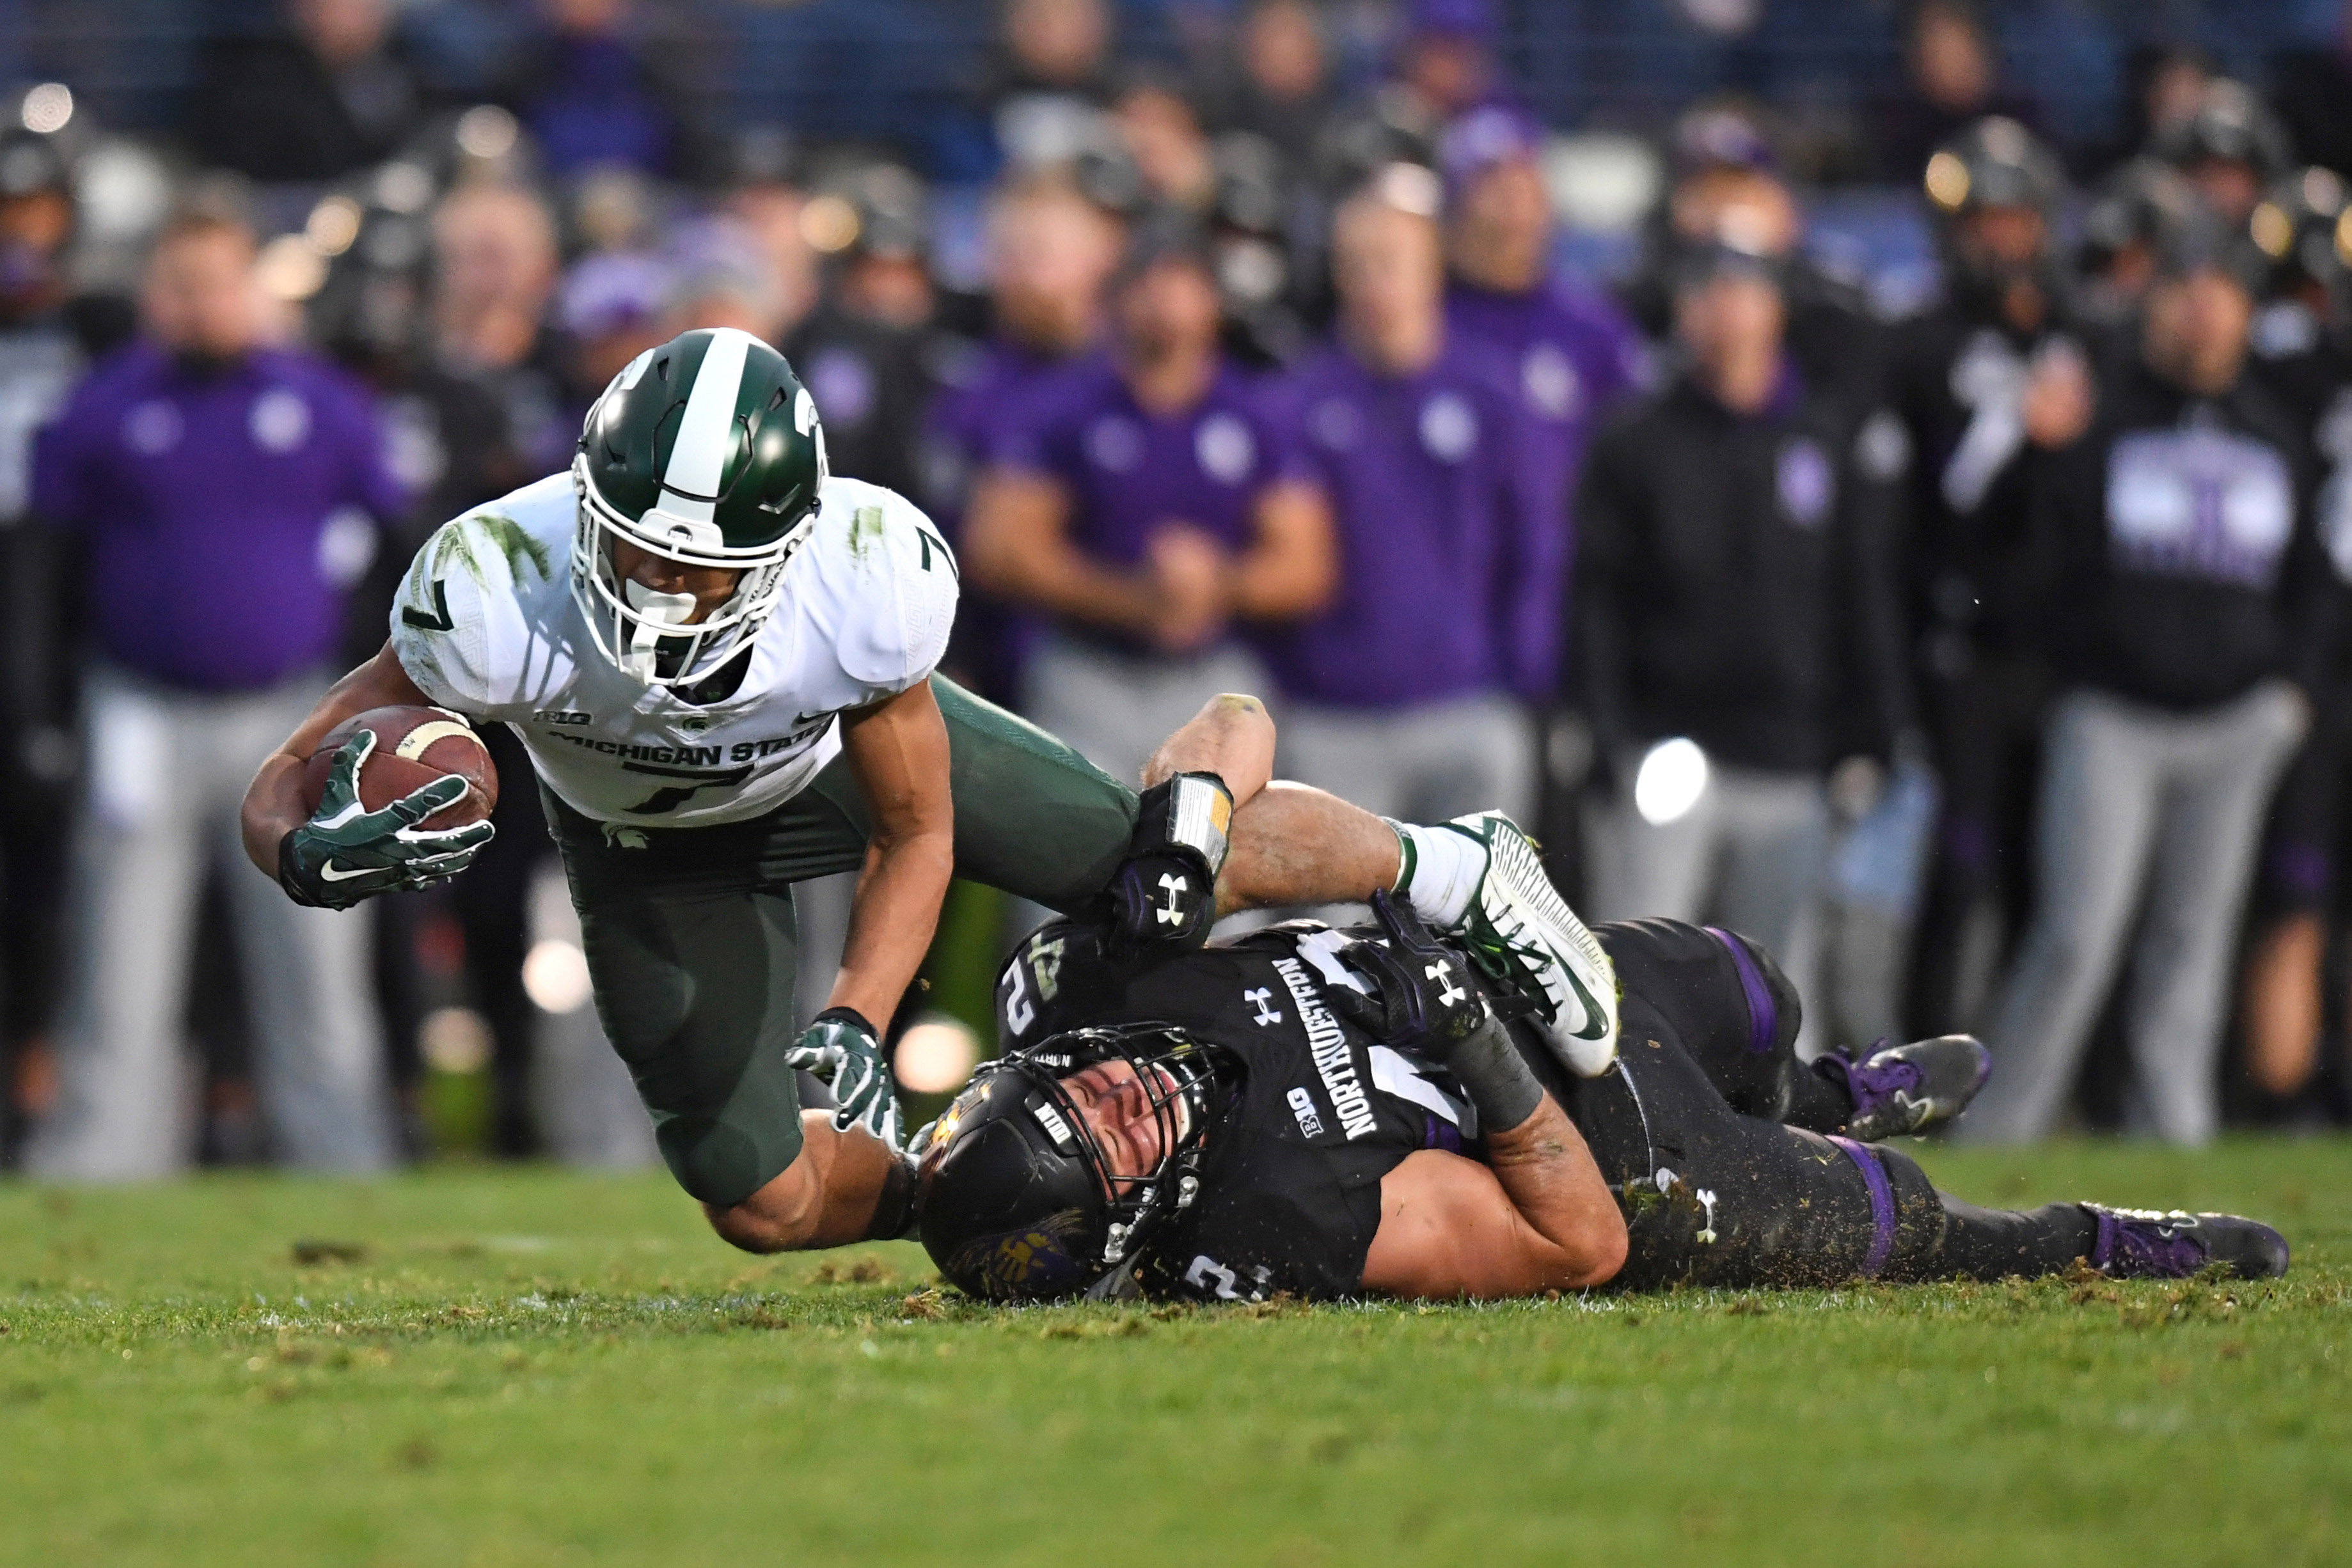 Northwestern Wildcats ILB Paddy Fisher tackles Michigan State Spartans WR Cody White, Oct. 28, 2017.